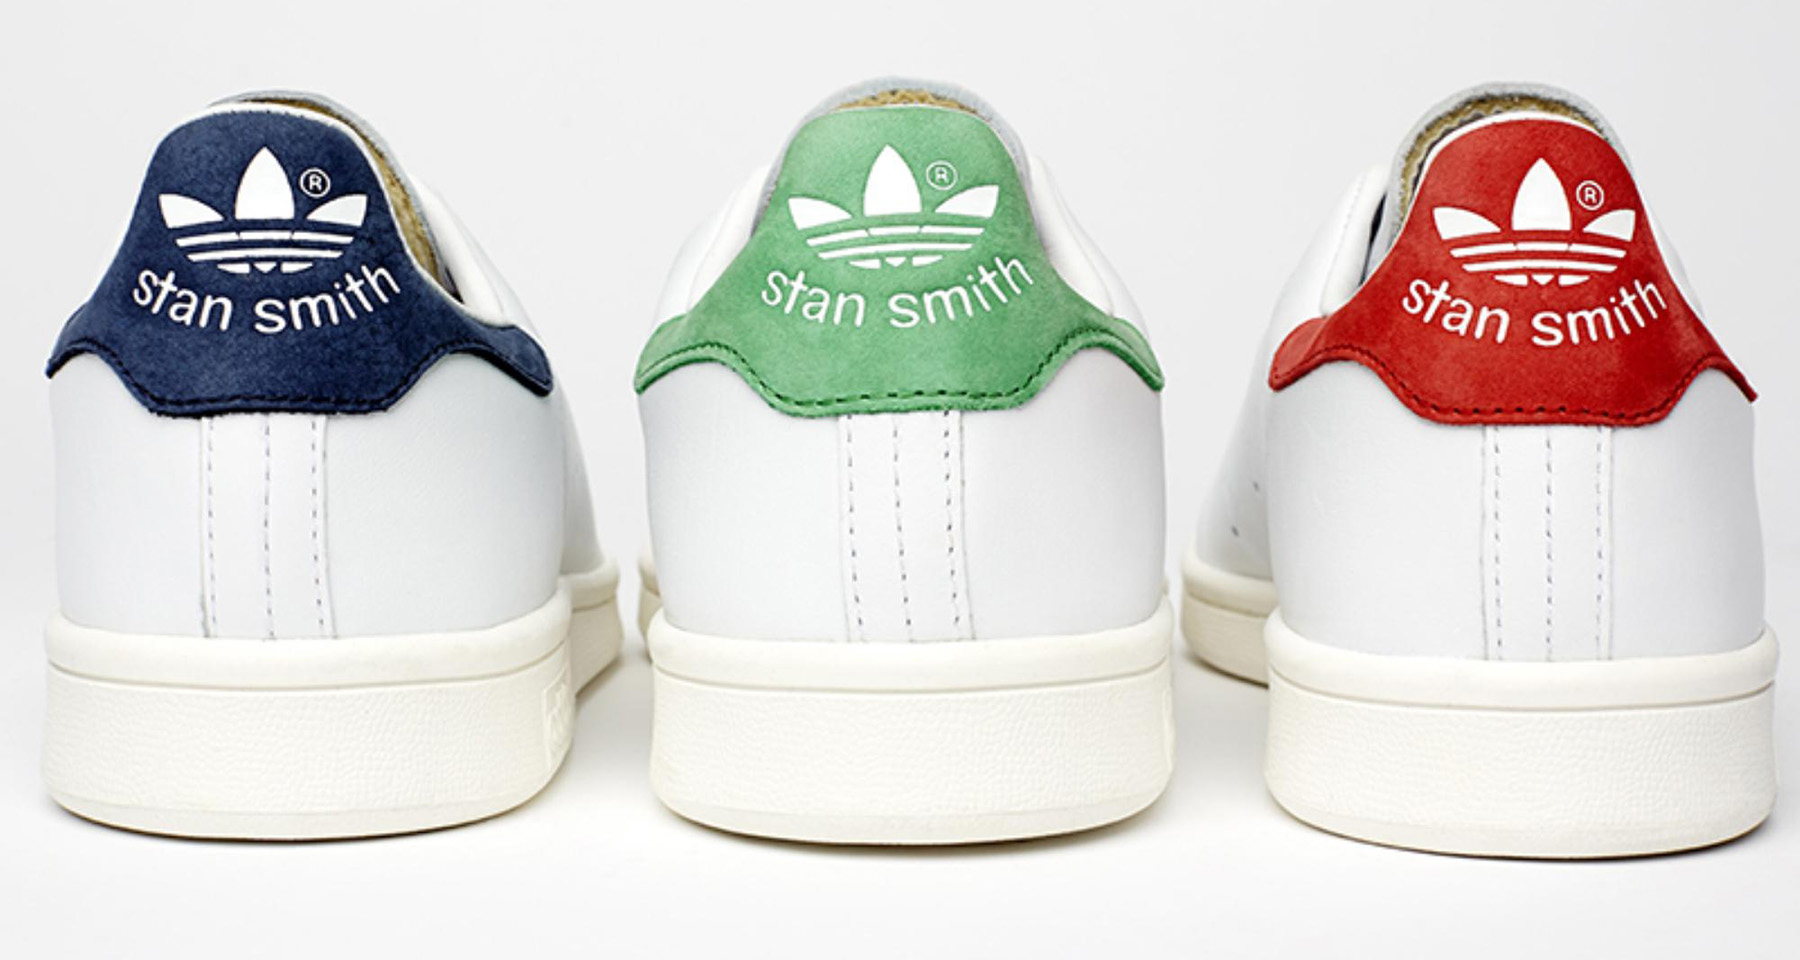 12 digital lessons news media companies can learn from Stan Smith sneakers